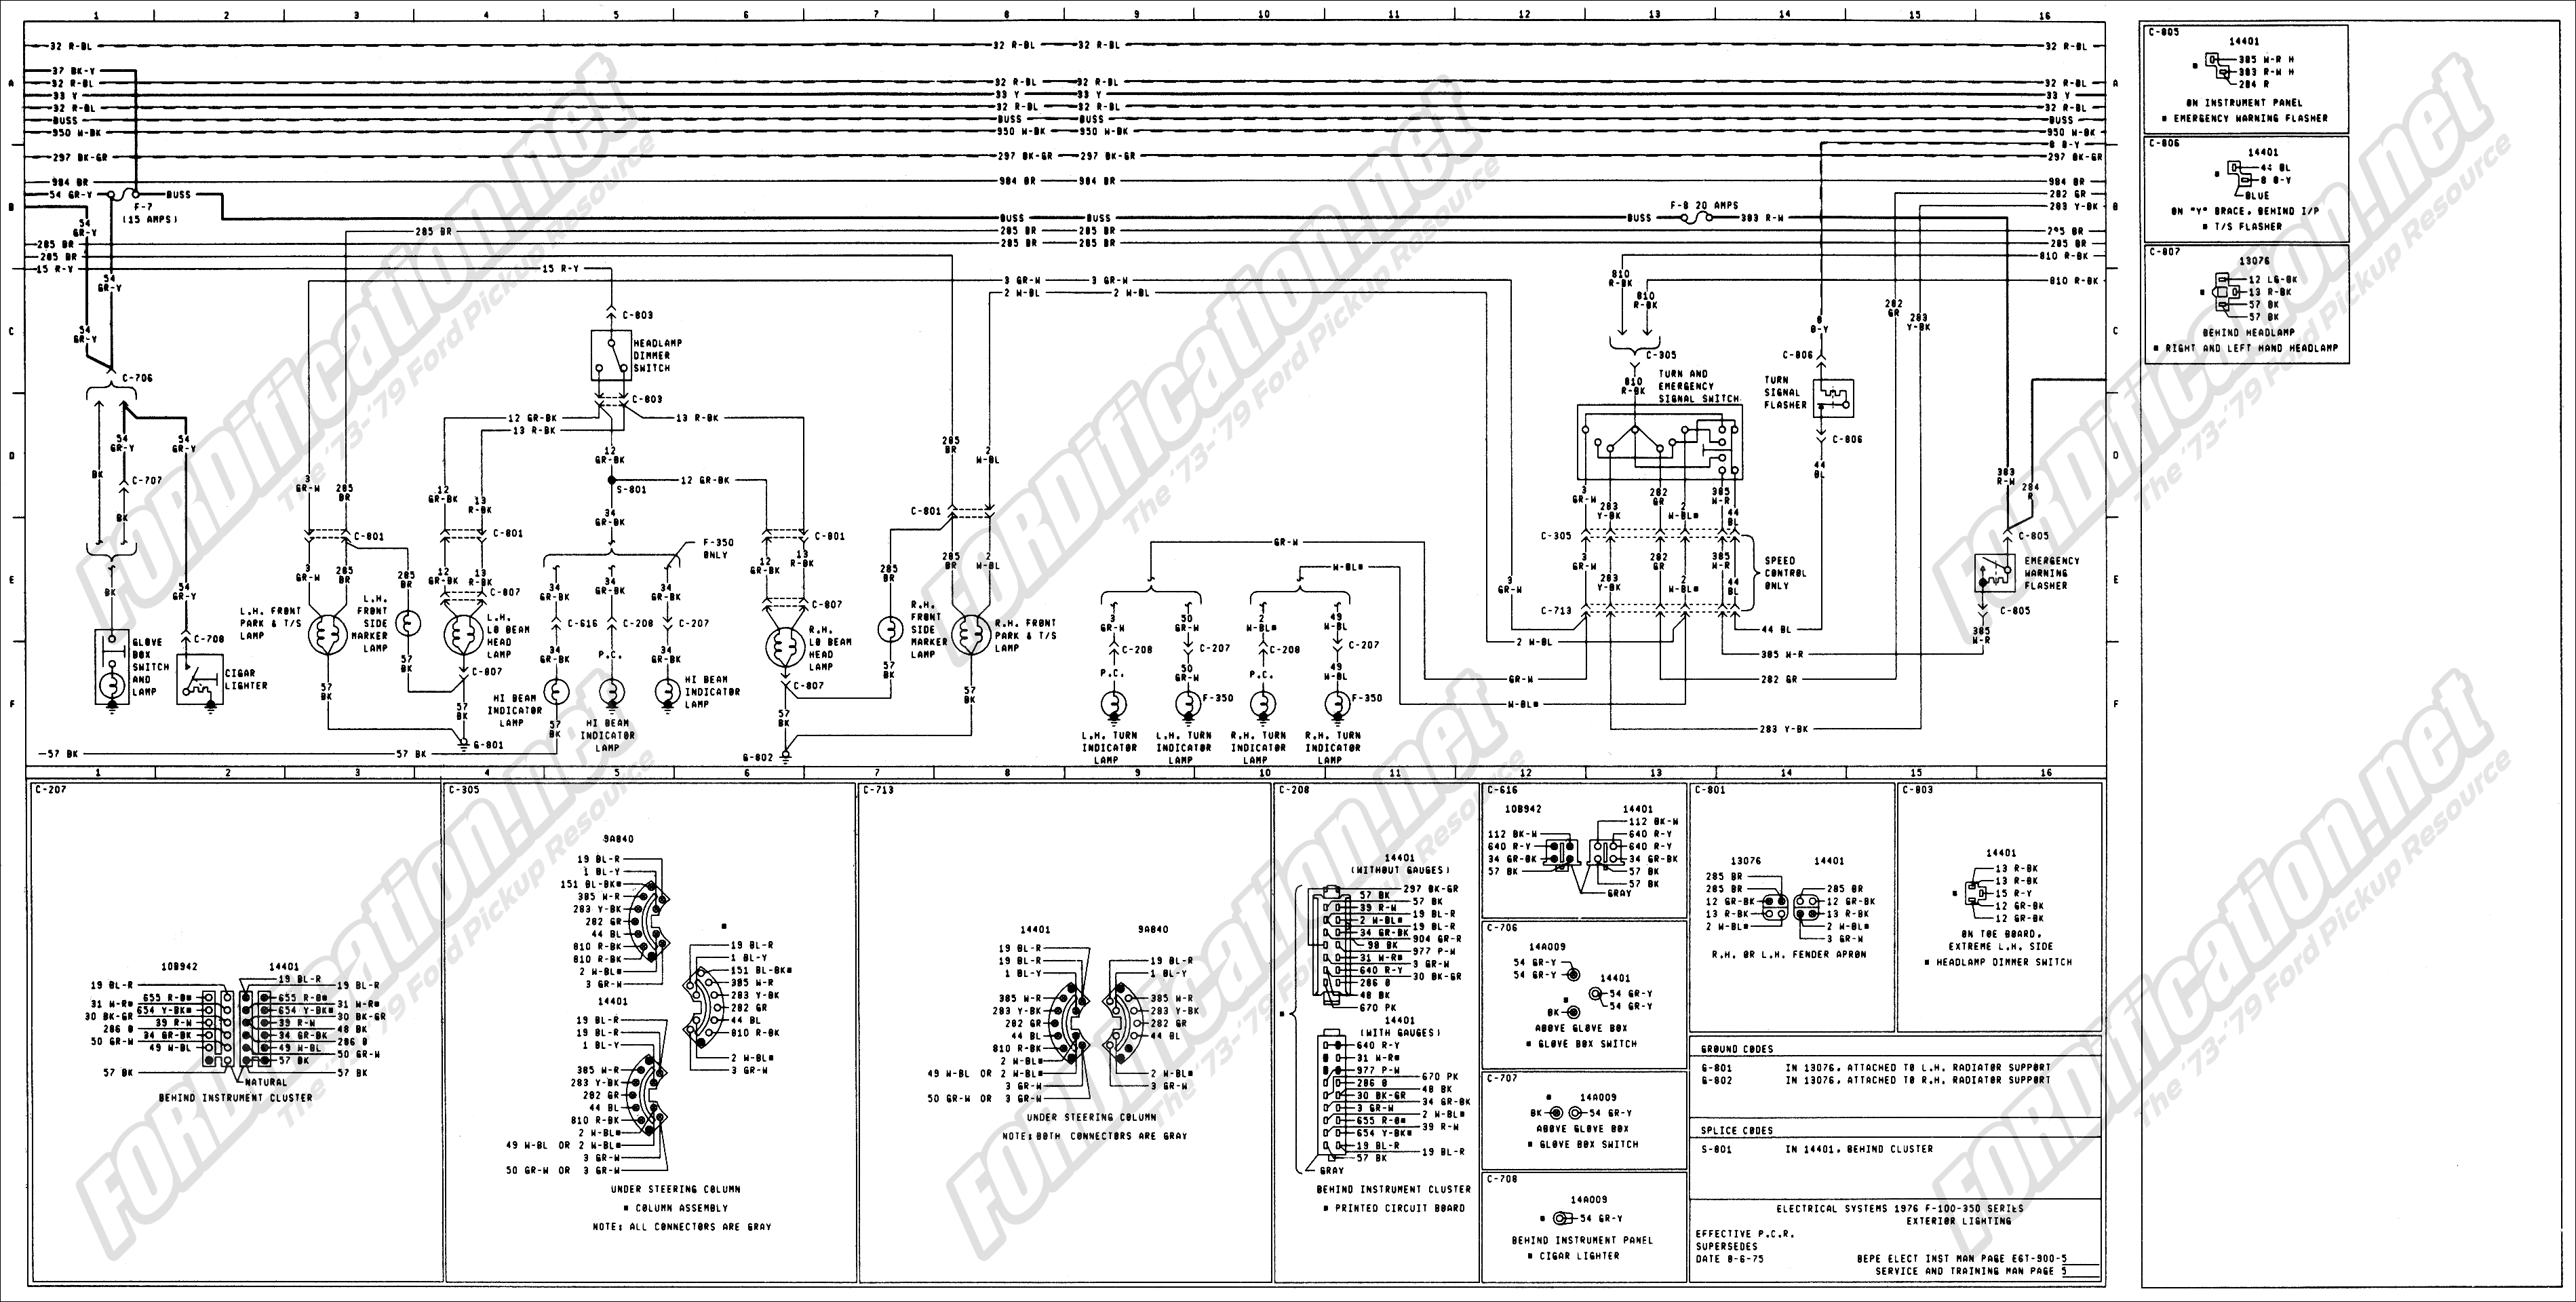 wiring_76master_5of9 1973 1979 ford truck wiring diagrams & schematics fordification net 73 ford f250 wiring diagram at nearapp.co